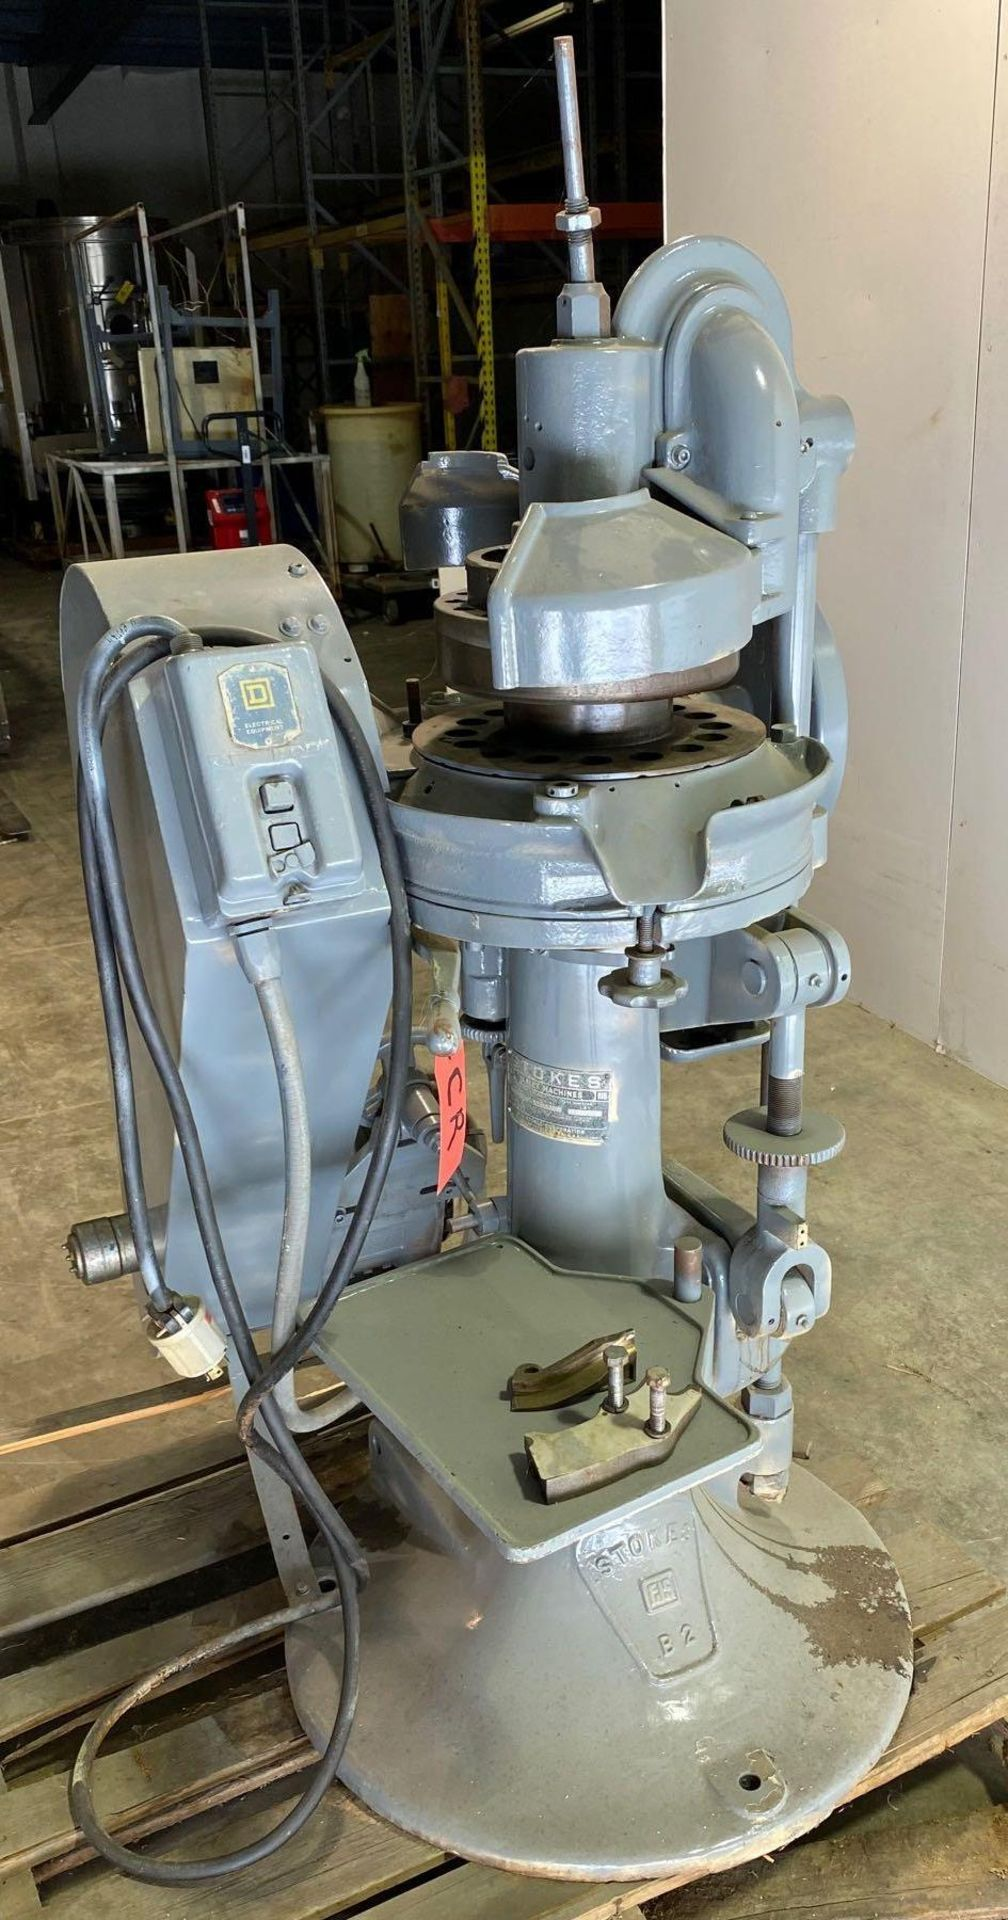 Stokes B2 16 Station Rotary Tablet Press - Image 2 of 13